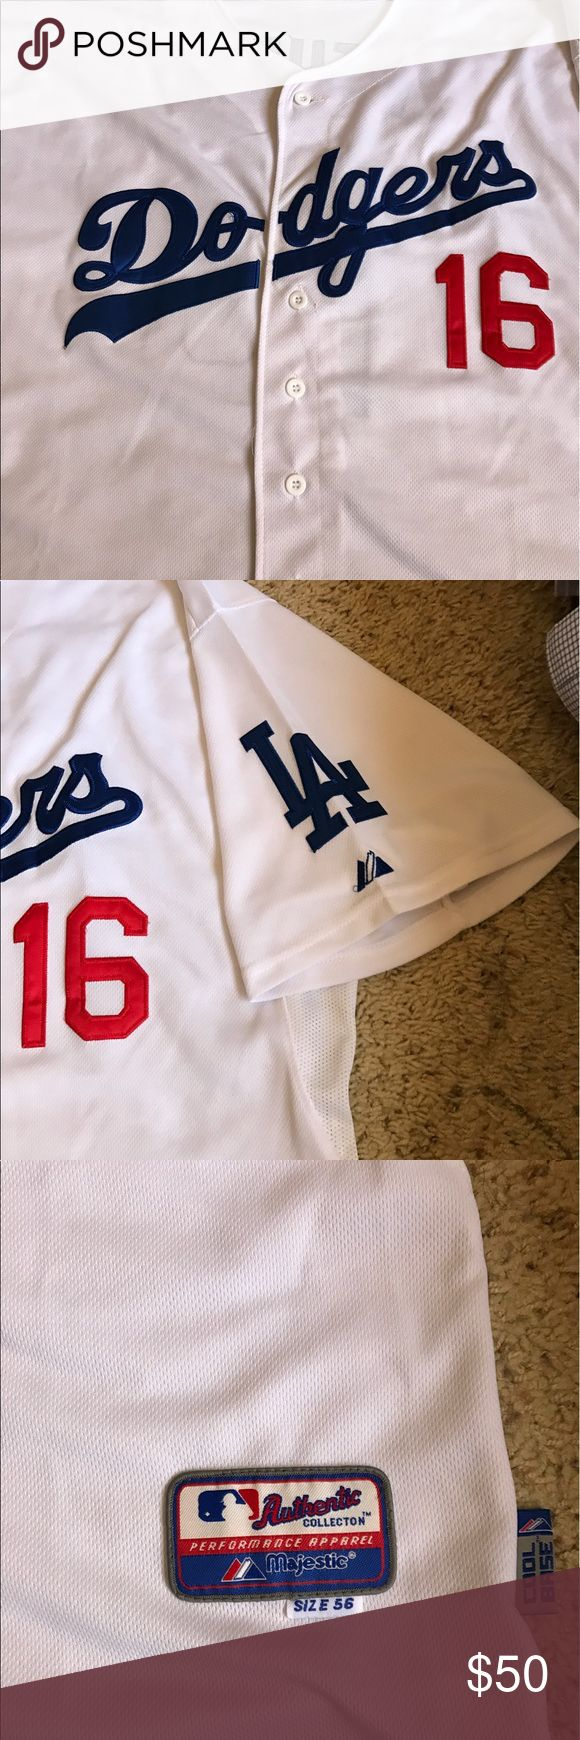 Authentic Dodgers jersey Gently used dodgers jersey, Andre Either #16 men's xl or 56, in great condotion MLB Shirts